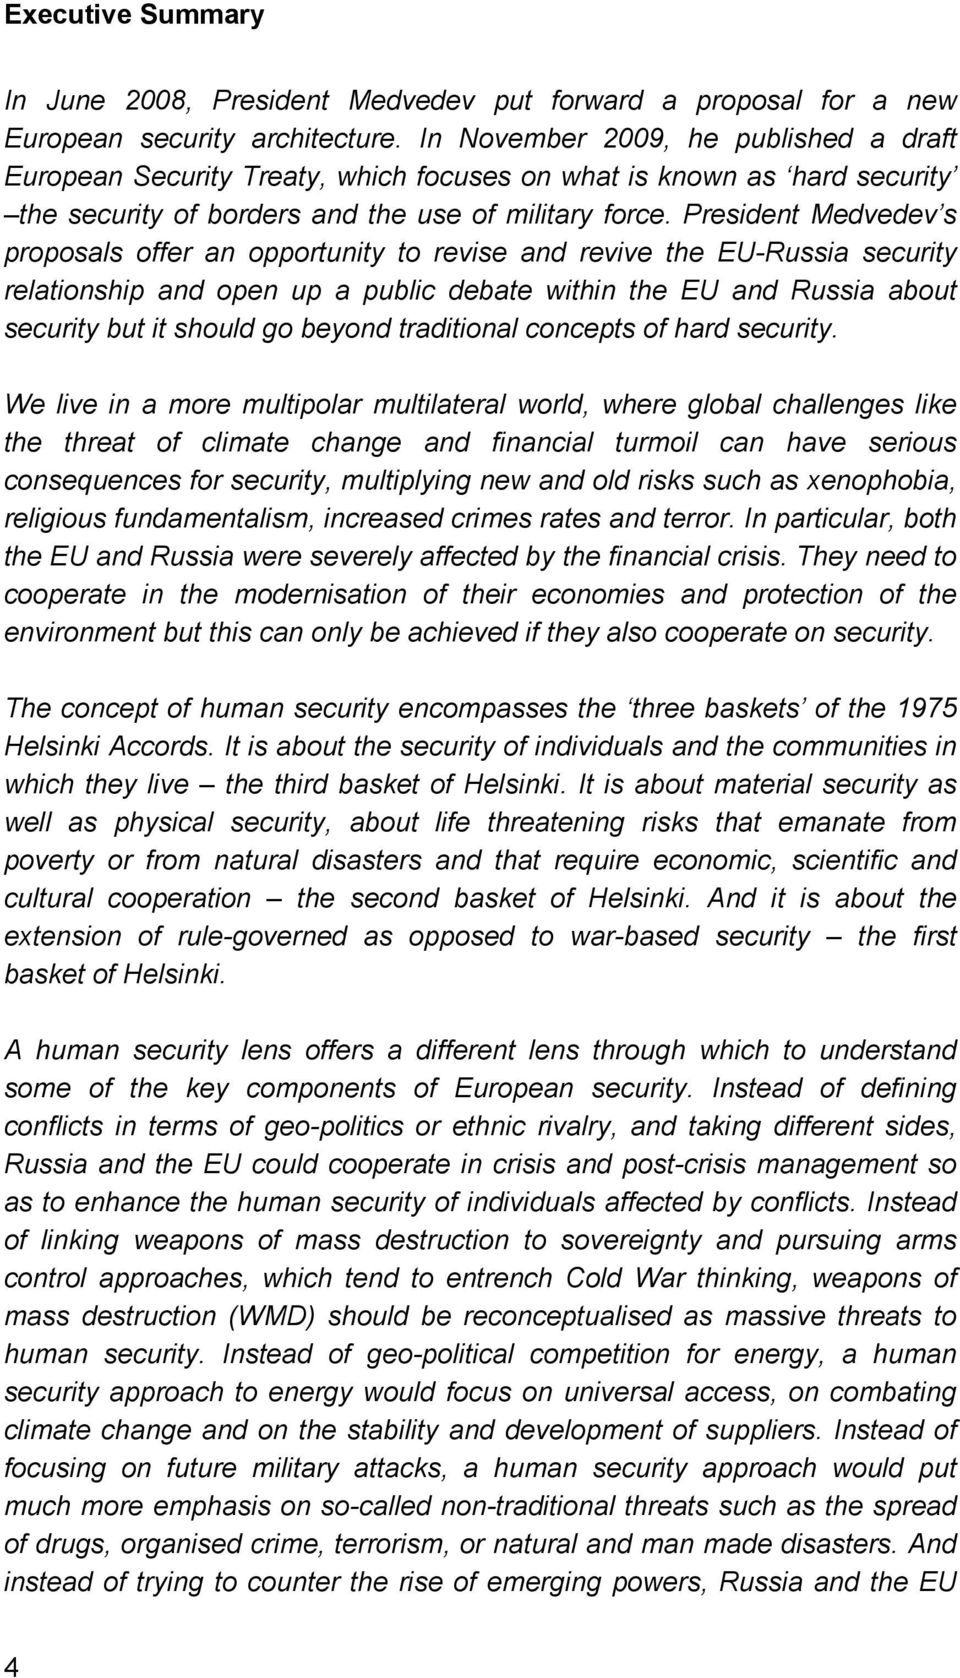 President Medvedev s proposals offer an opportunity to revise and revive the EU-Russia security relationship and open up a public debate within the EU and Russia about security but it should go